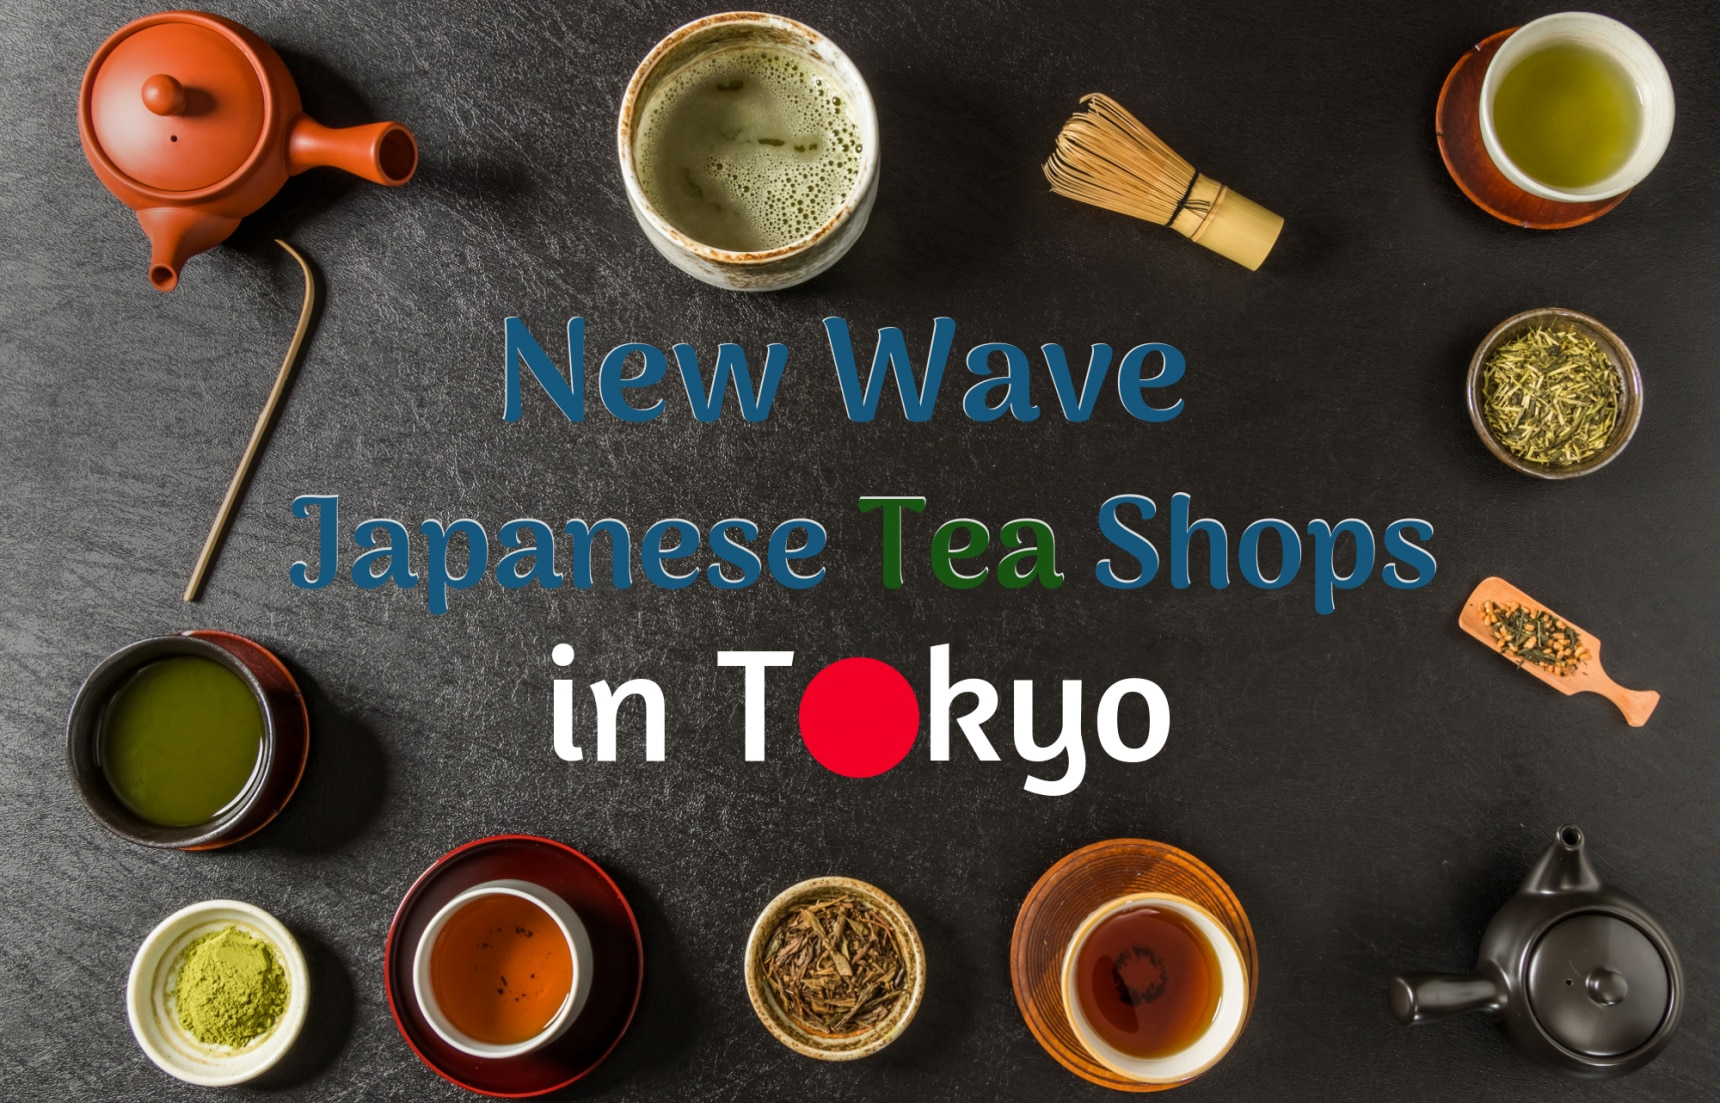 New Wave Japanese Tea Shops in Tokyo